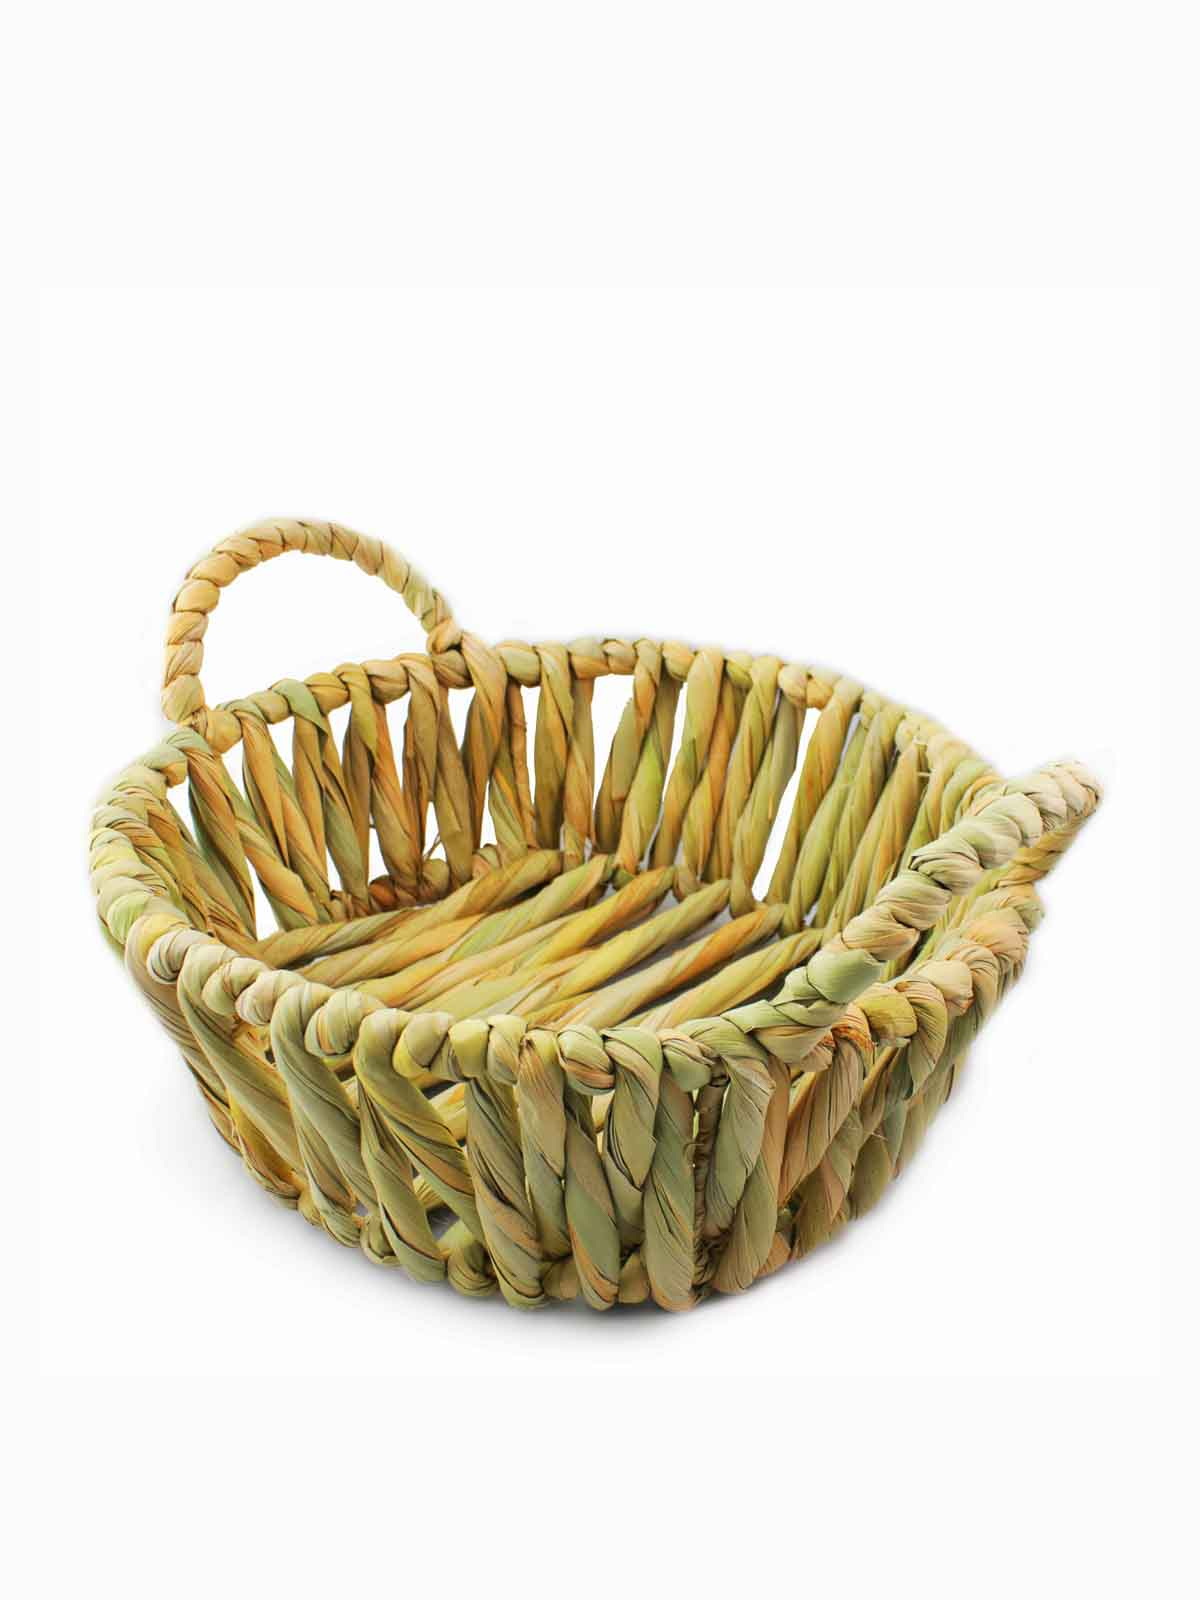 HAND WOVEN PALM BASKET WITH HANDLES